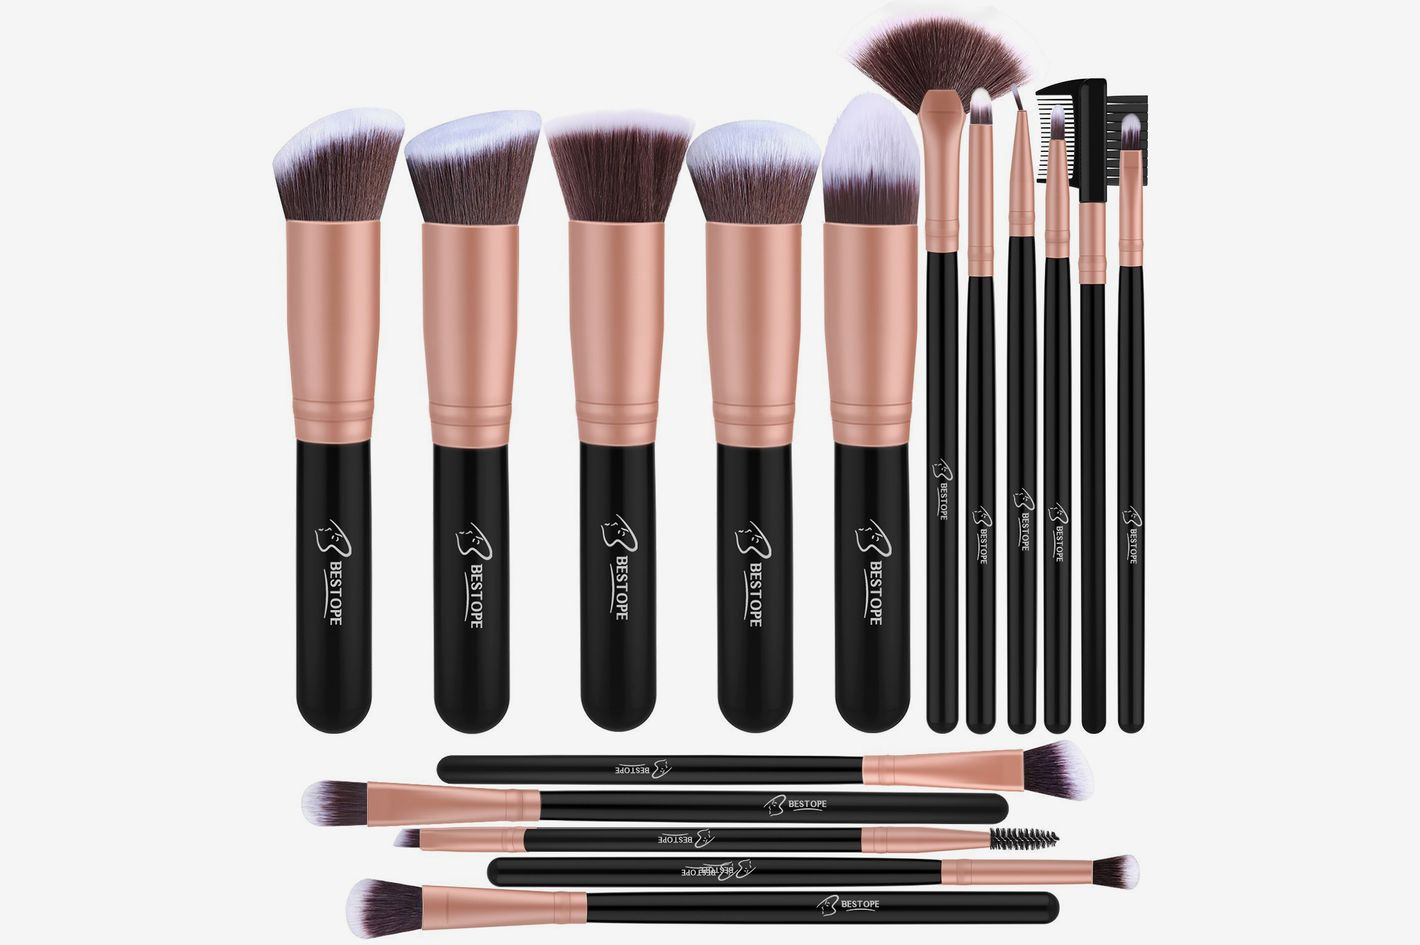 BESTOPE Makeup Brushes 16-Piece Makeup Brush Set